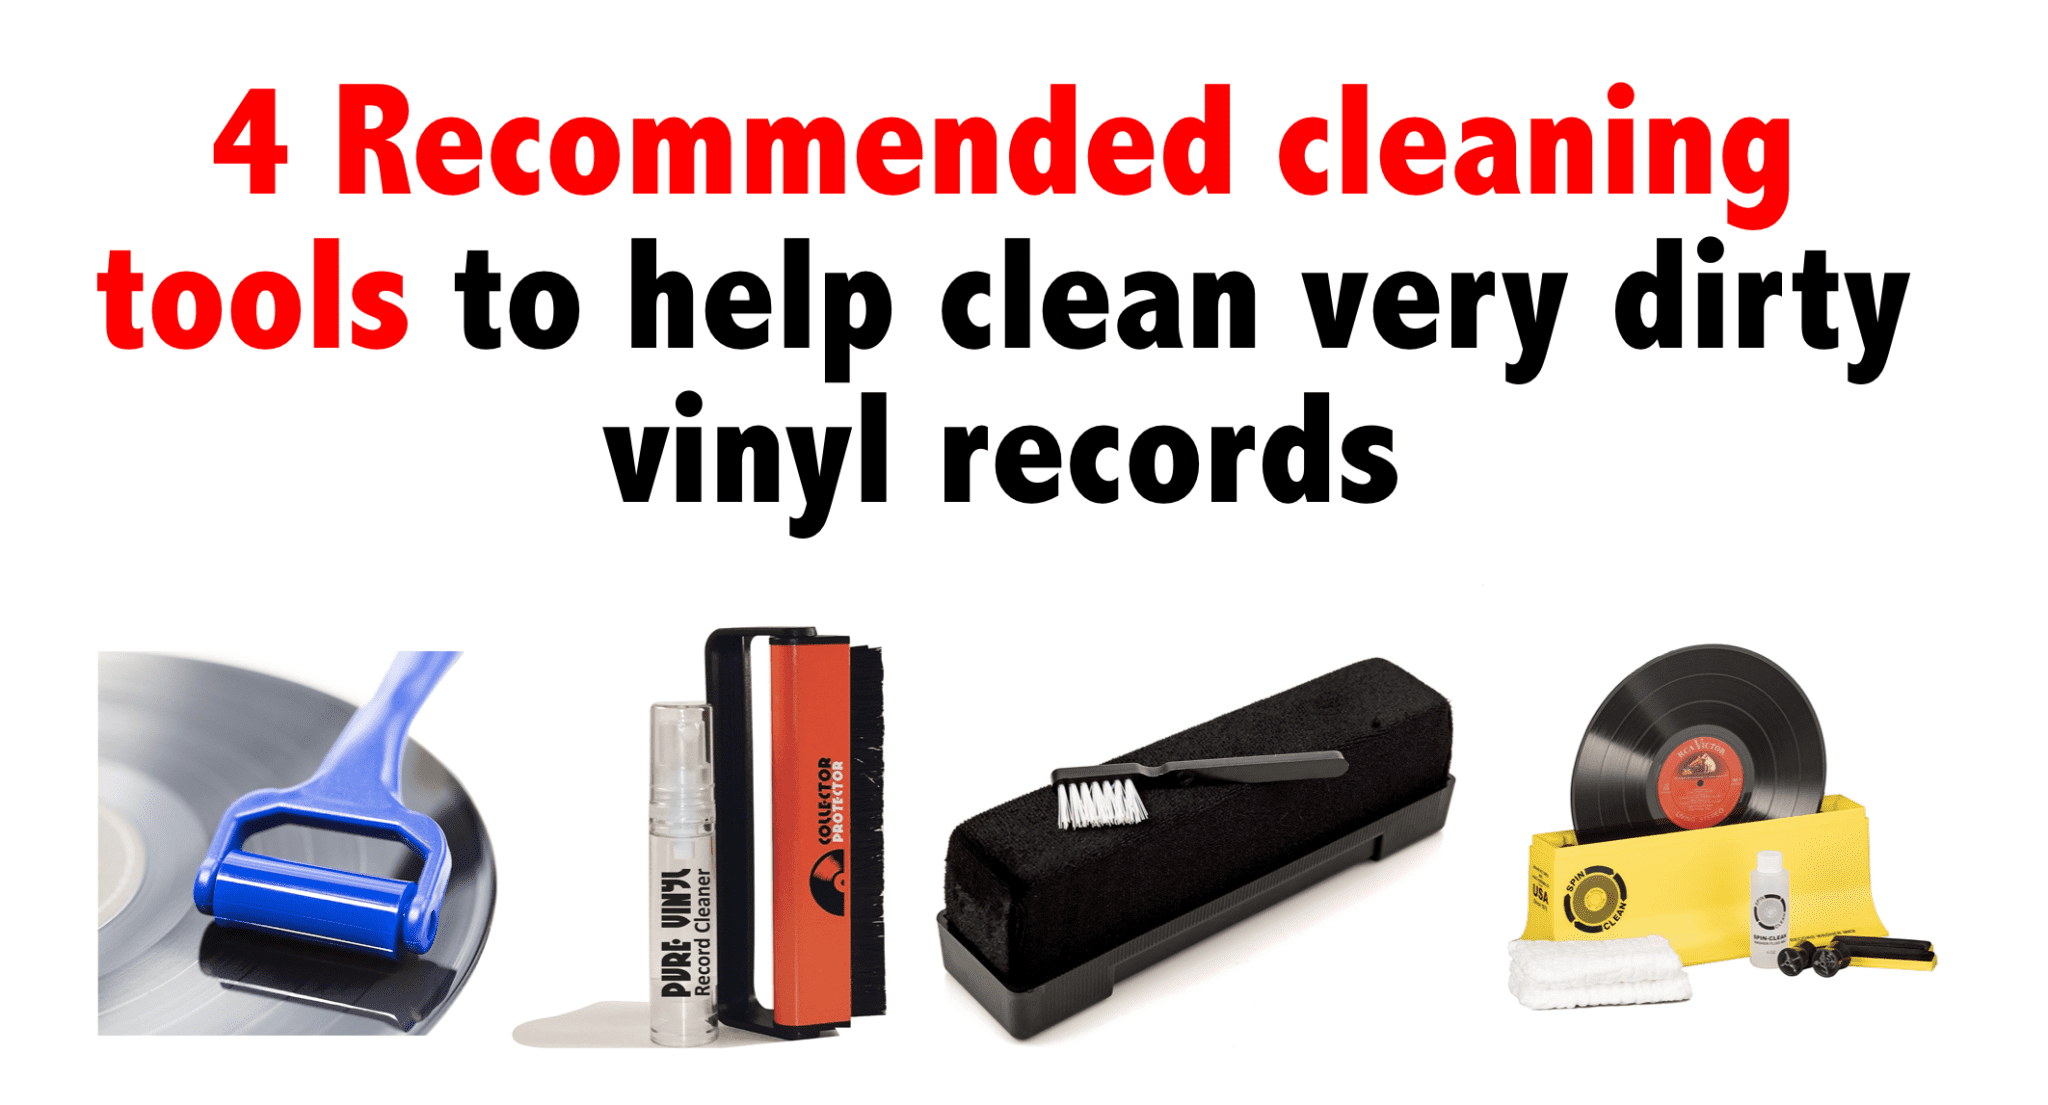 4 Recommended cleaning tools to help clean very dirty vinyl records